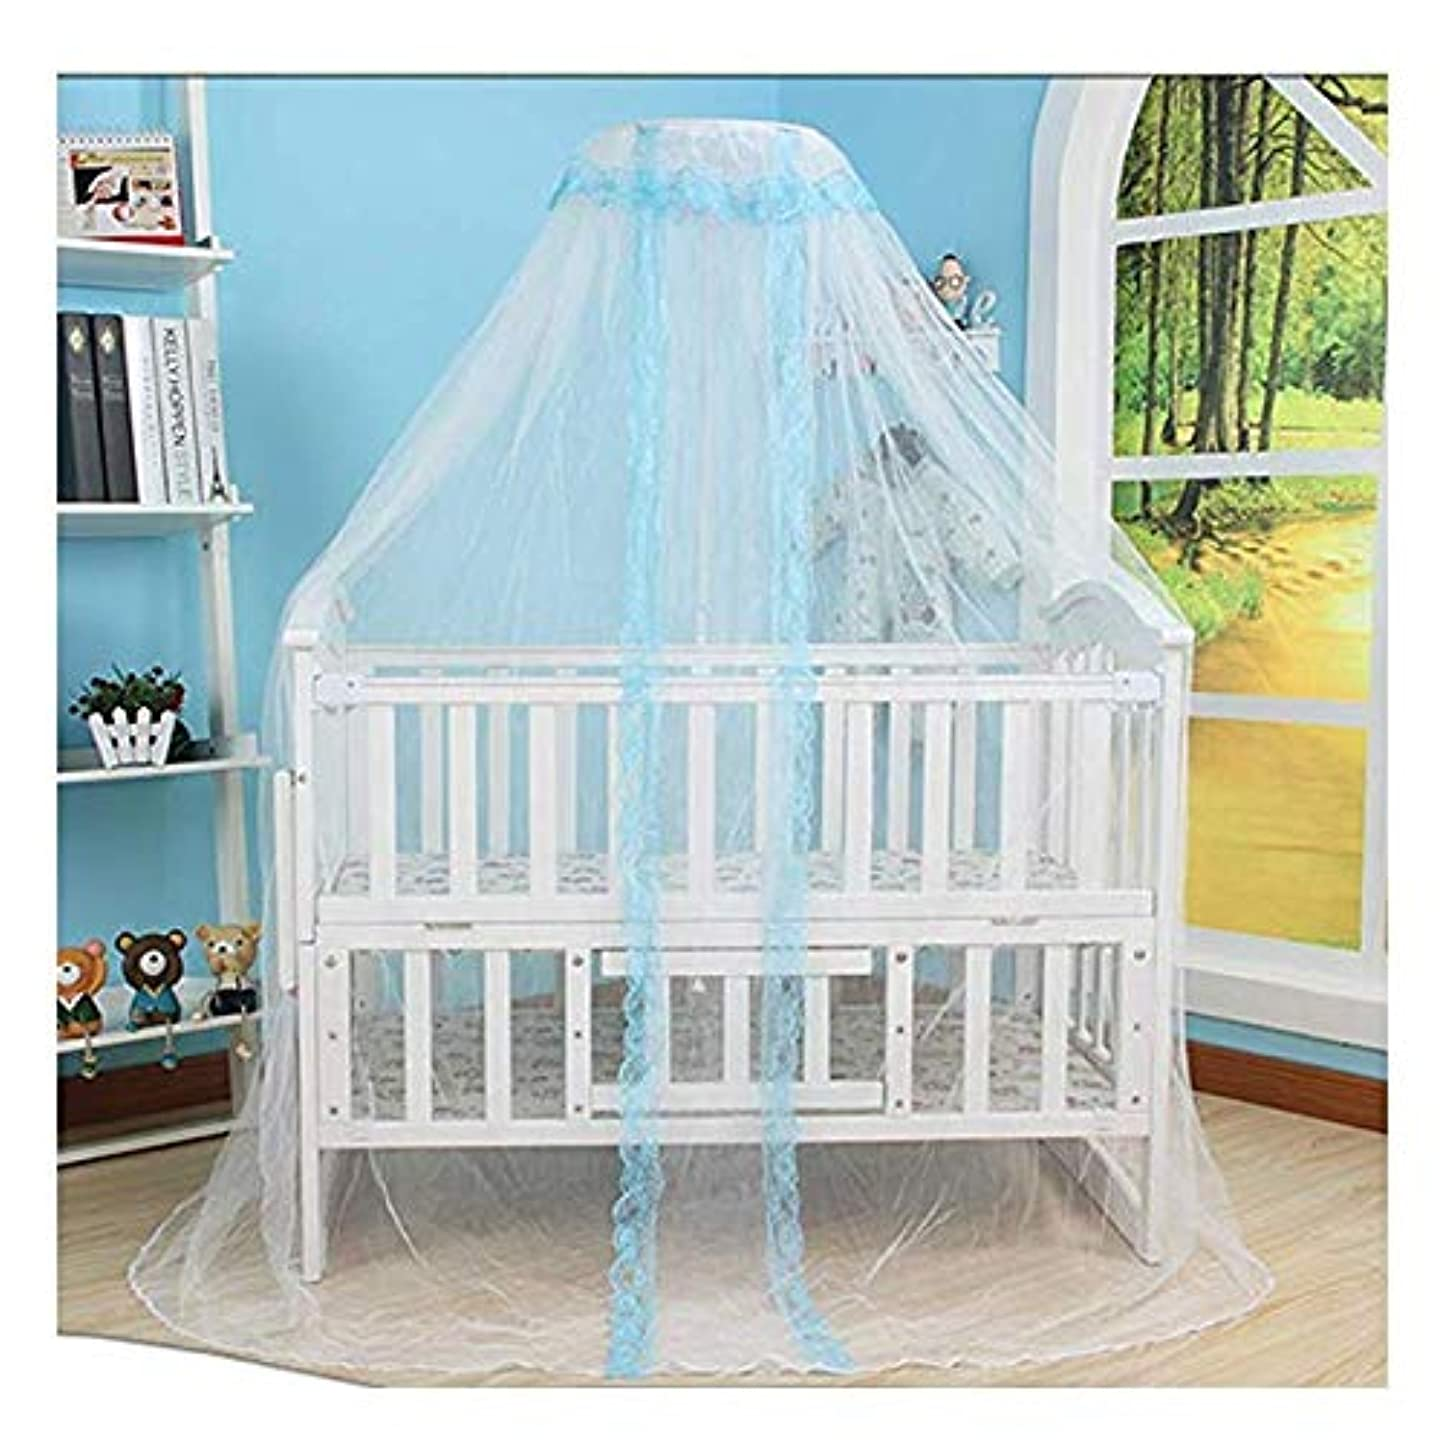 MMMMM Mosquito Net, Round Lace Curtain Dome Bed Canopy Netting, Princess Baby Toddler Crib,2 gmanoveayzd3